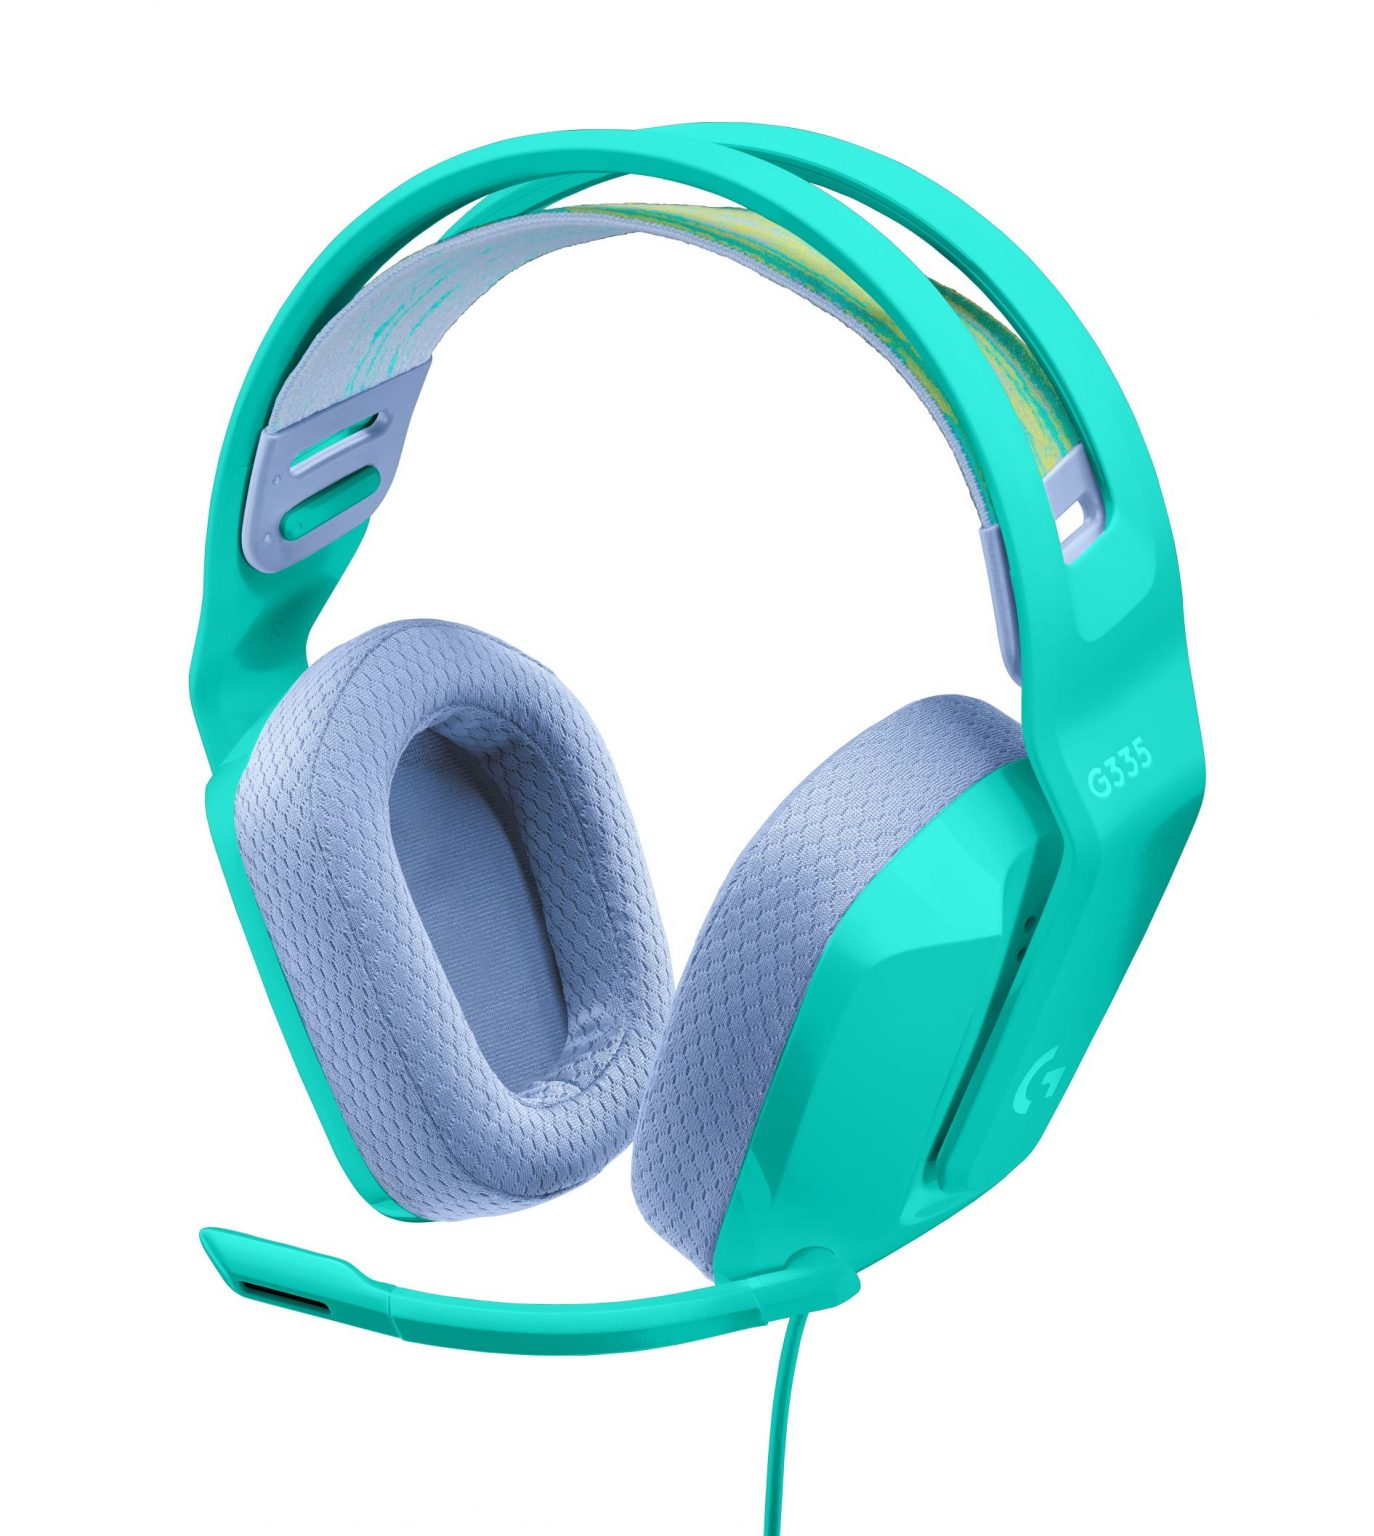 The new Logitech G 335 Wired Gaming Headset comes in mint (pictured), black or white.